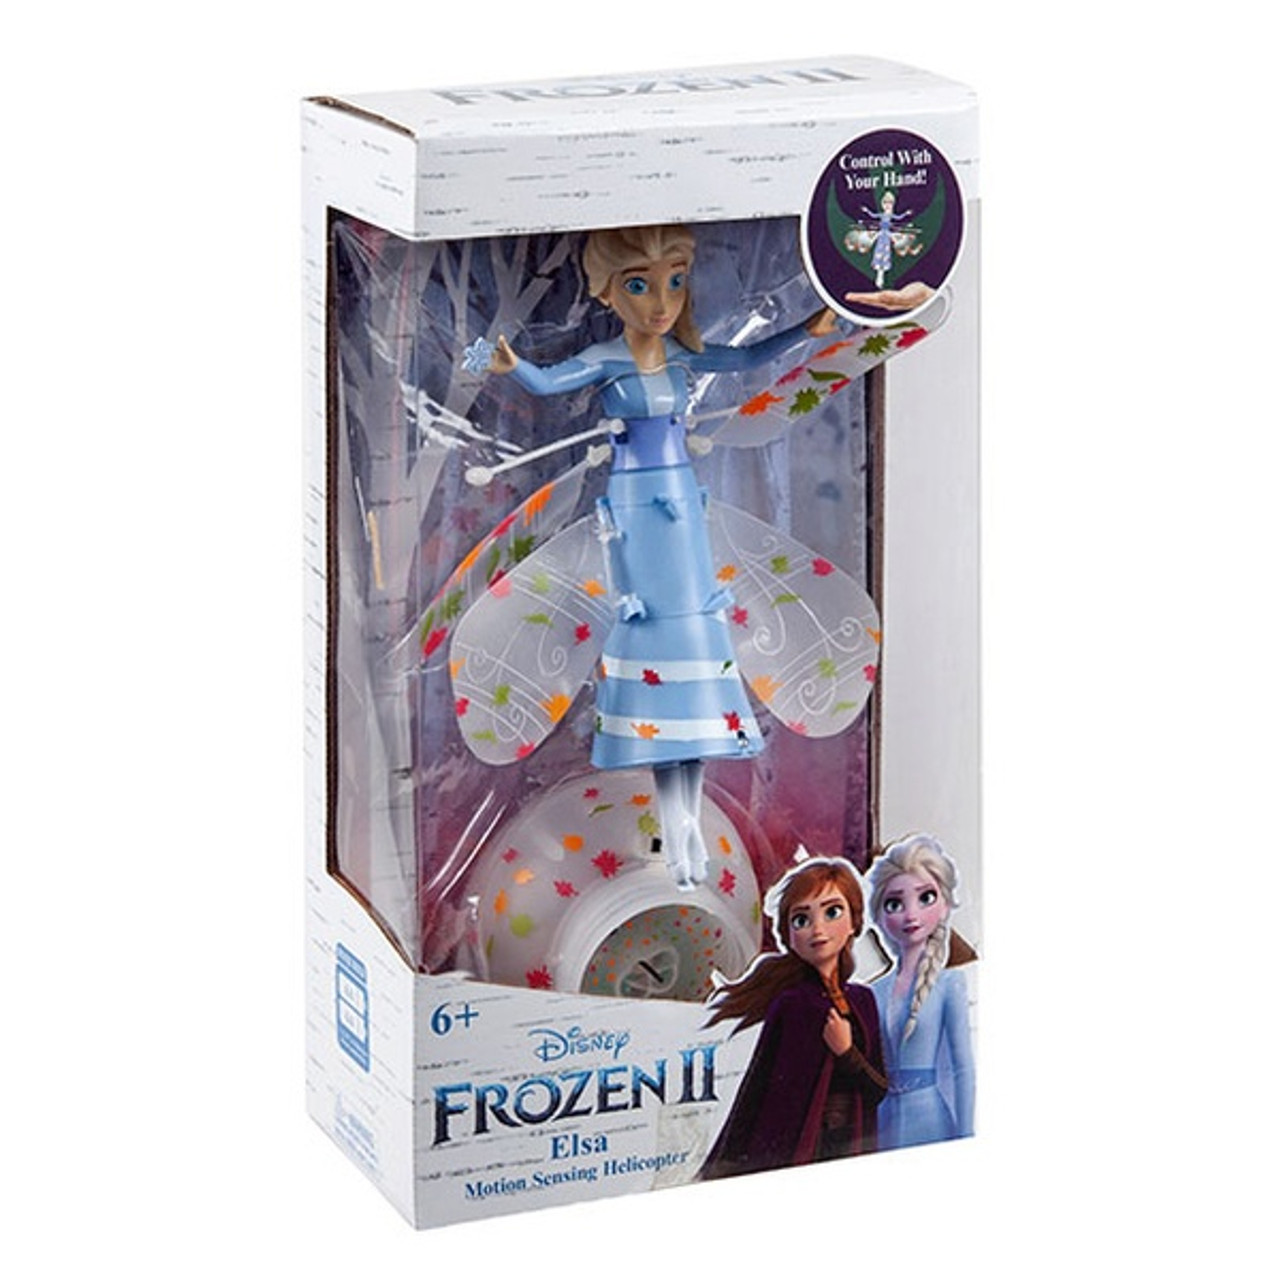 Frozen Elsa UFO Helicopter with Motion Sensing -7.5 Inch